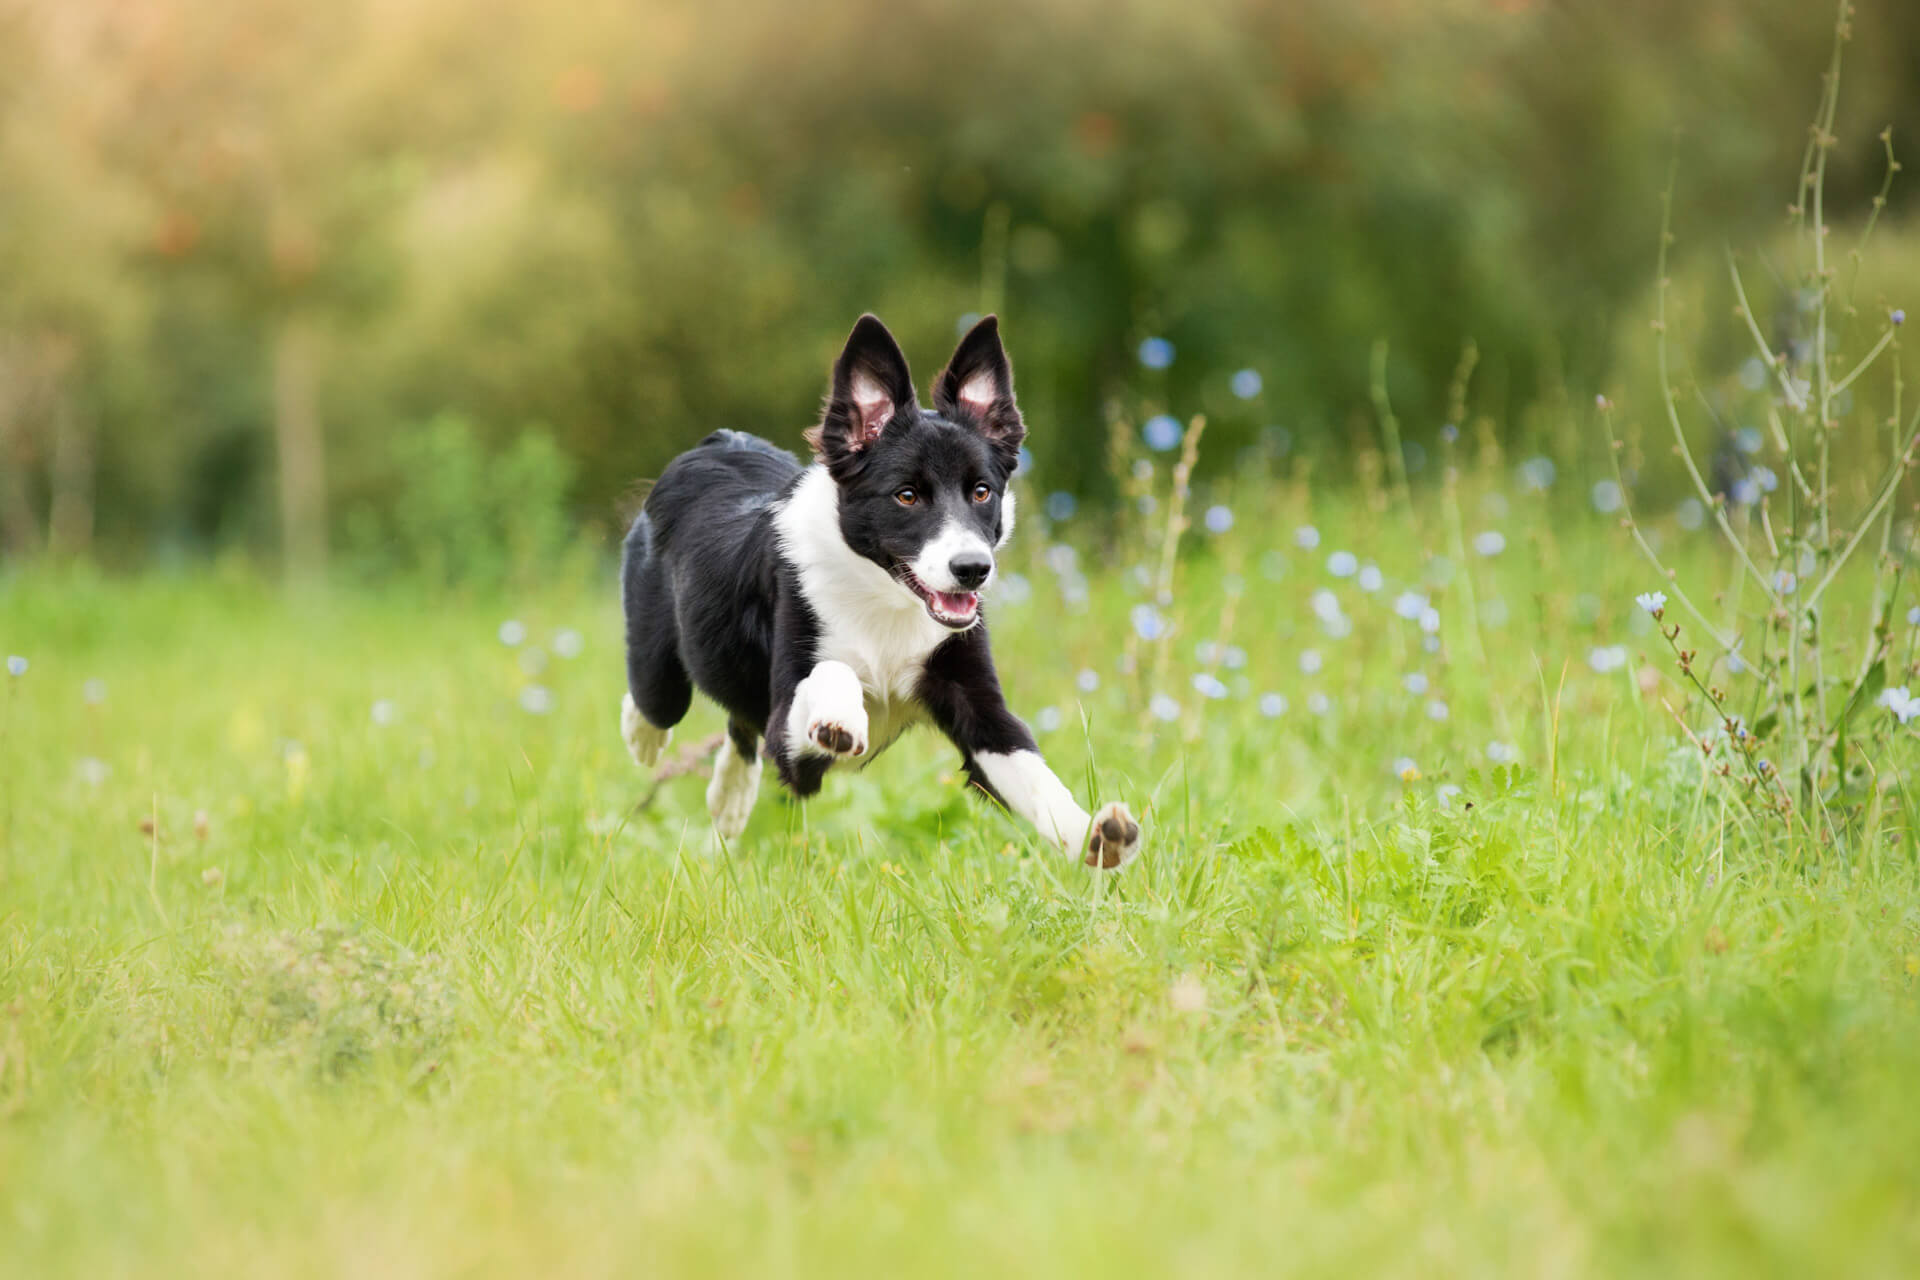 Dog Keeps Running Away? 5 Tips On How To Stop Your Dog From Running Away